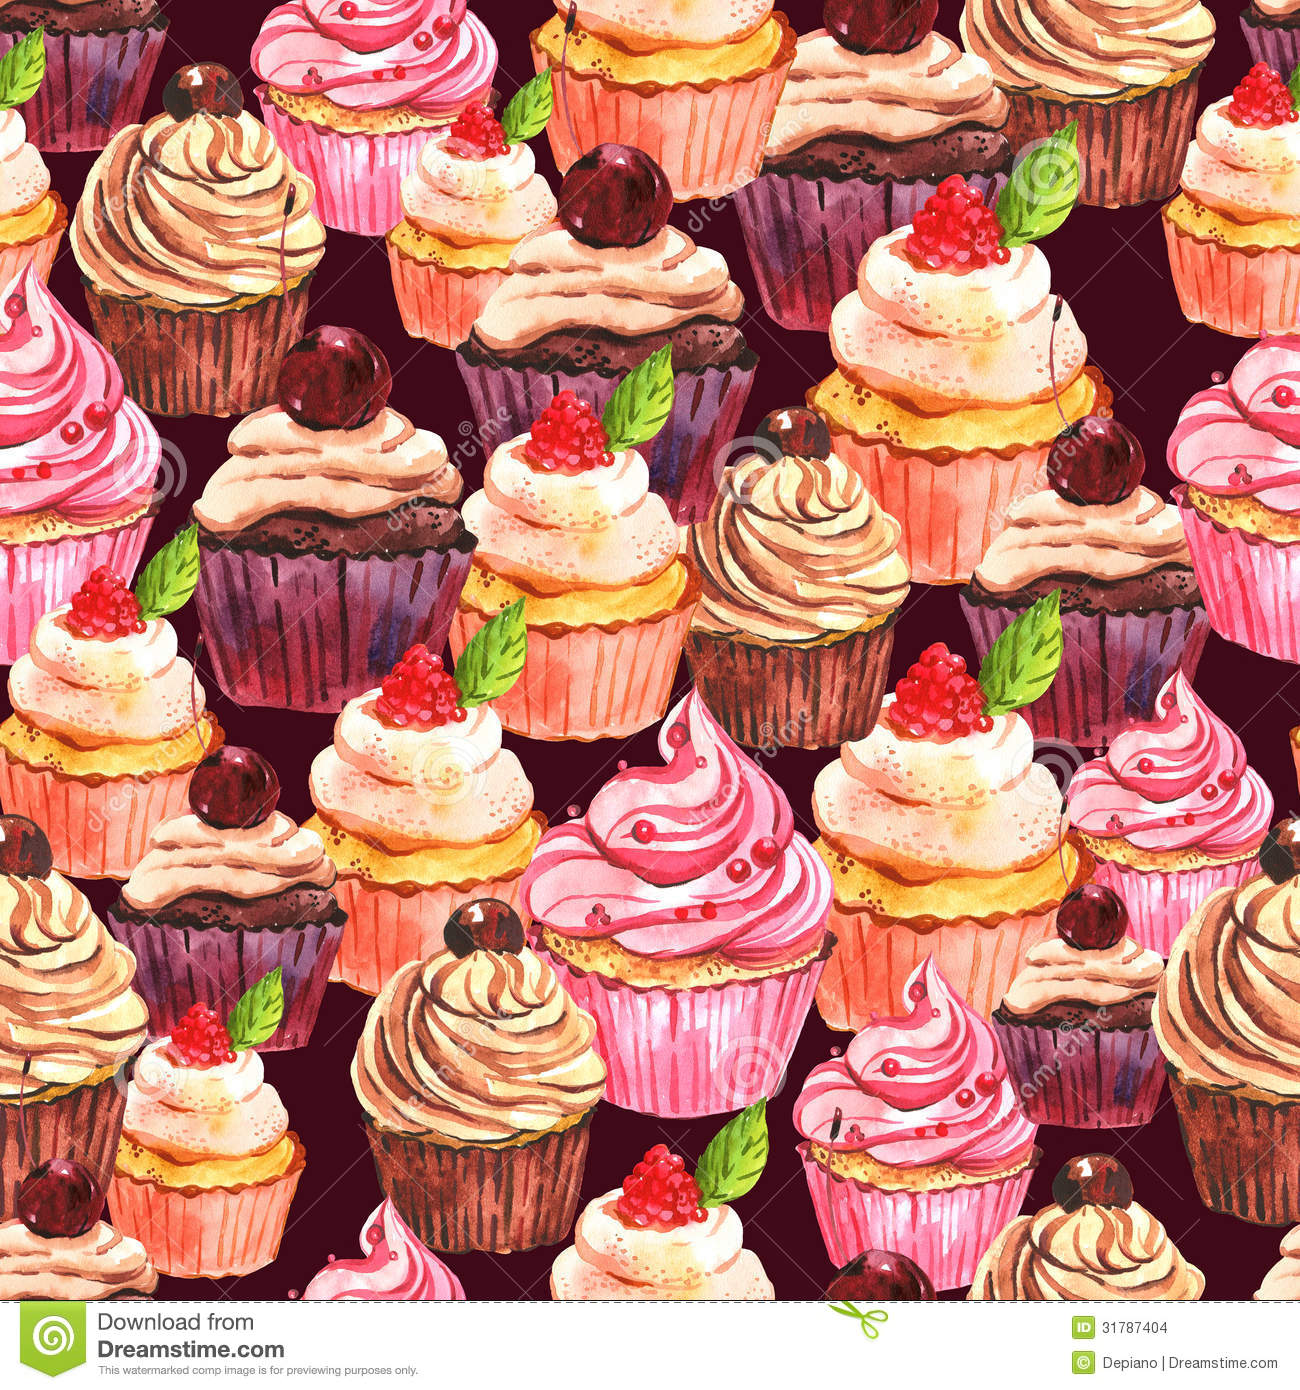 cupcakes wallpaper download